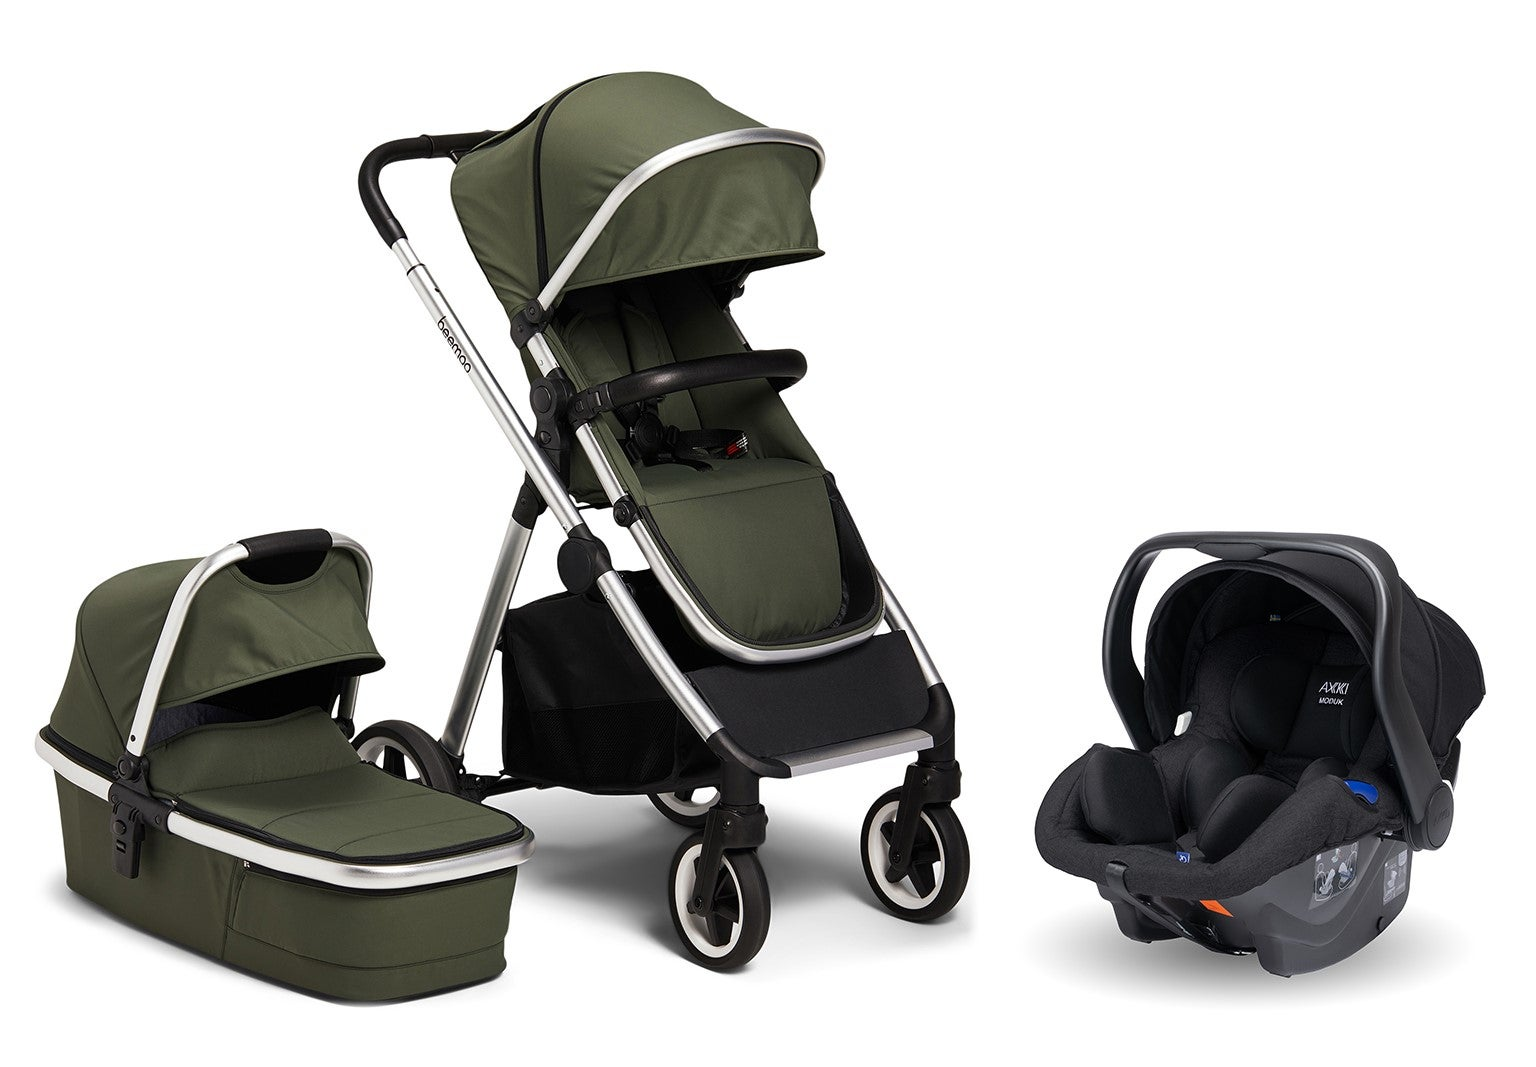 Beemoo Pro Duo Duovagn Inkl. Axkid Modukid Infant Babyskydd, Green